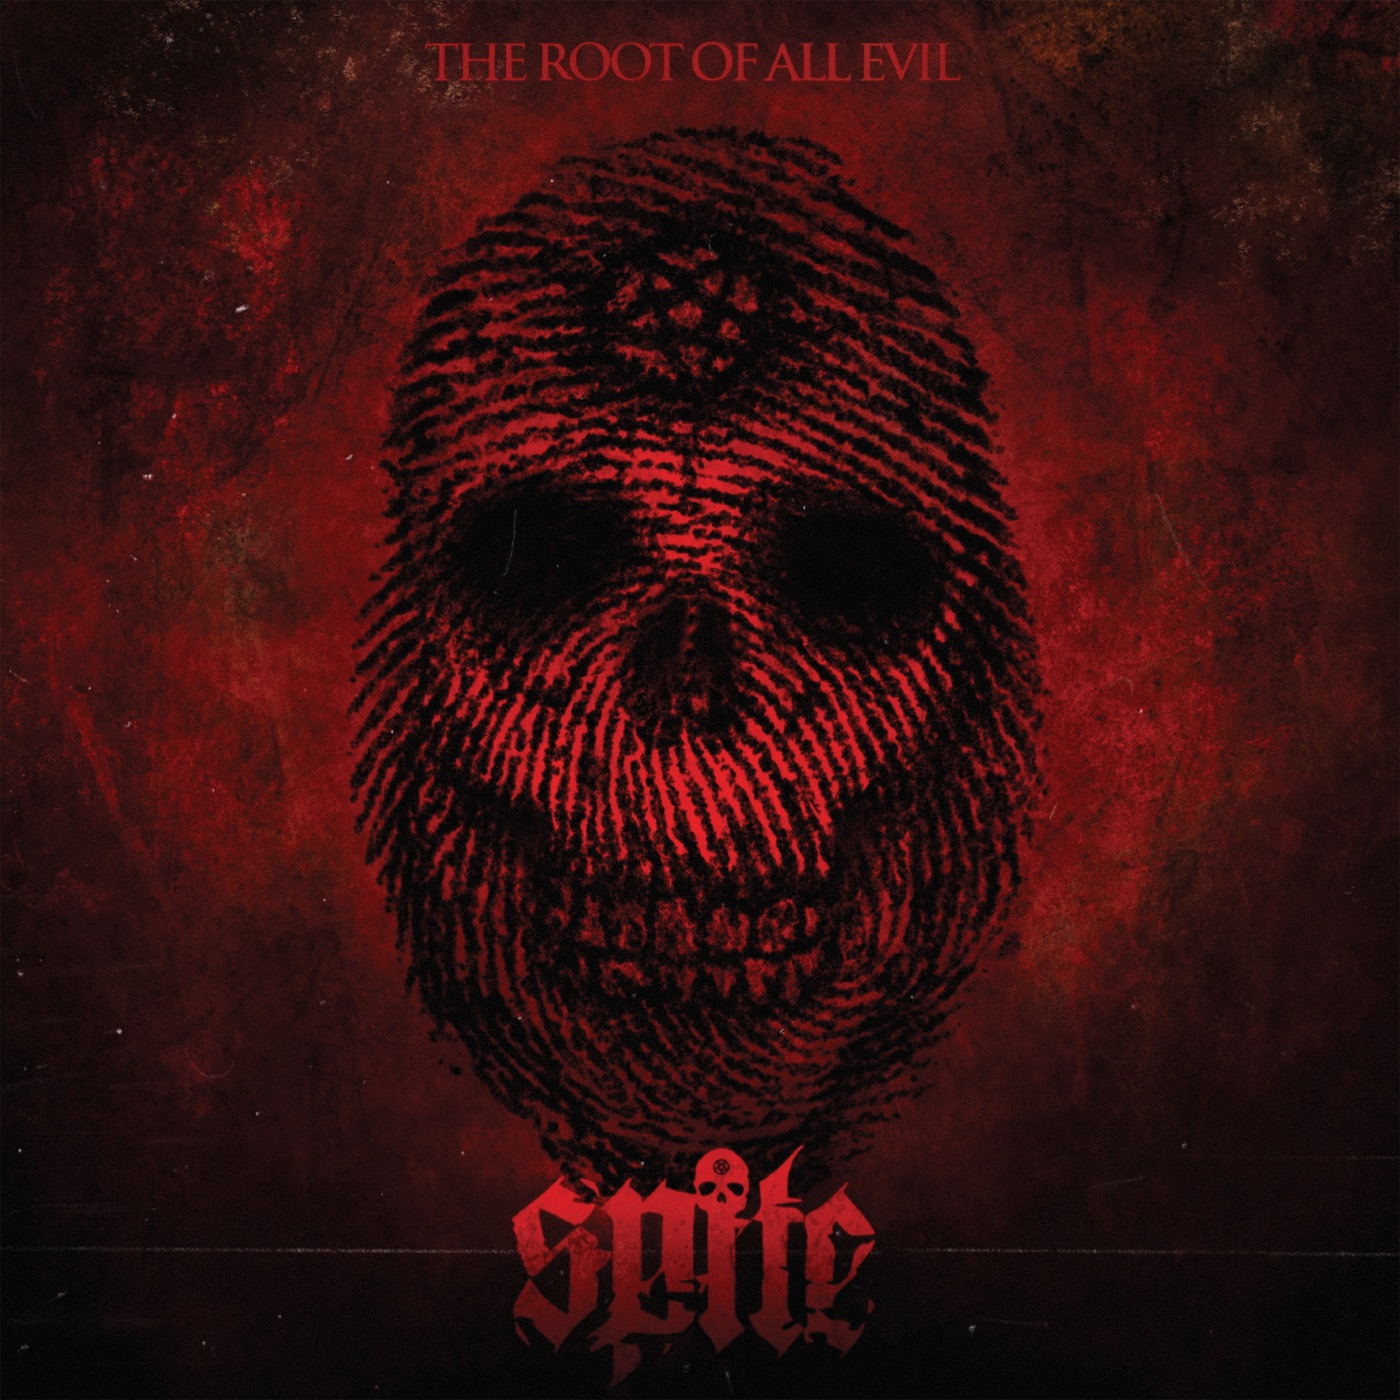 Spite - The Root of All Evil